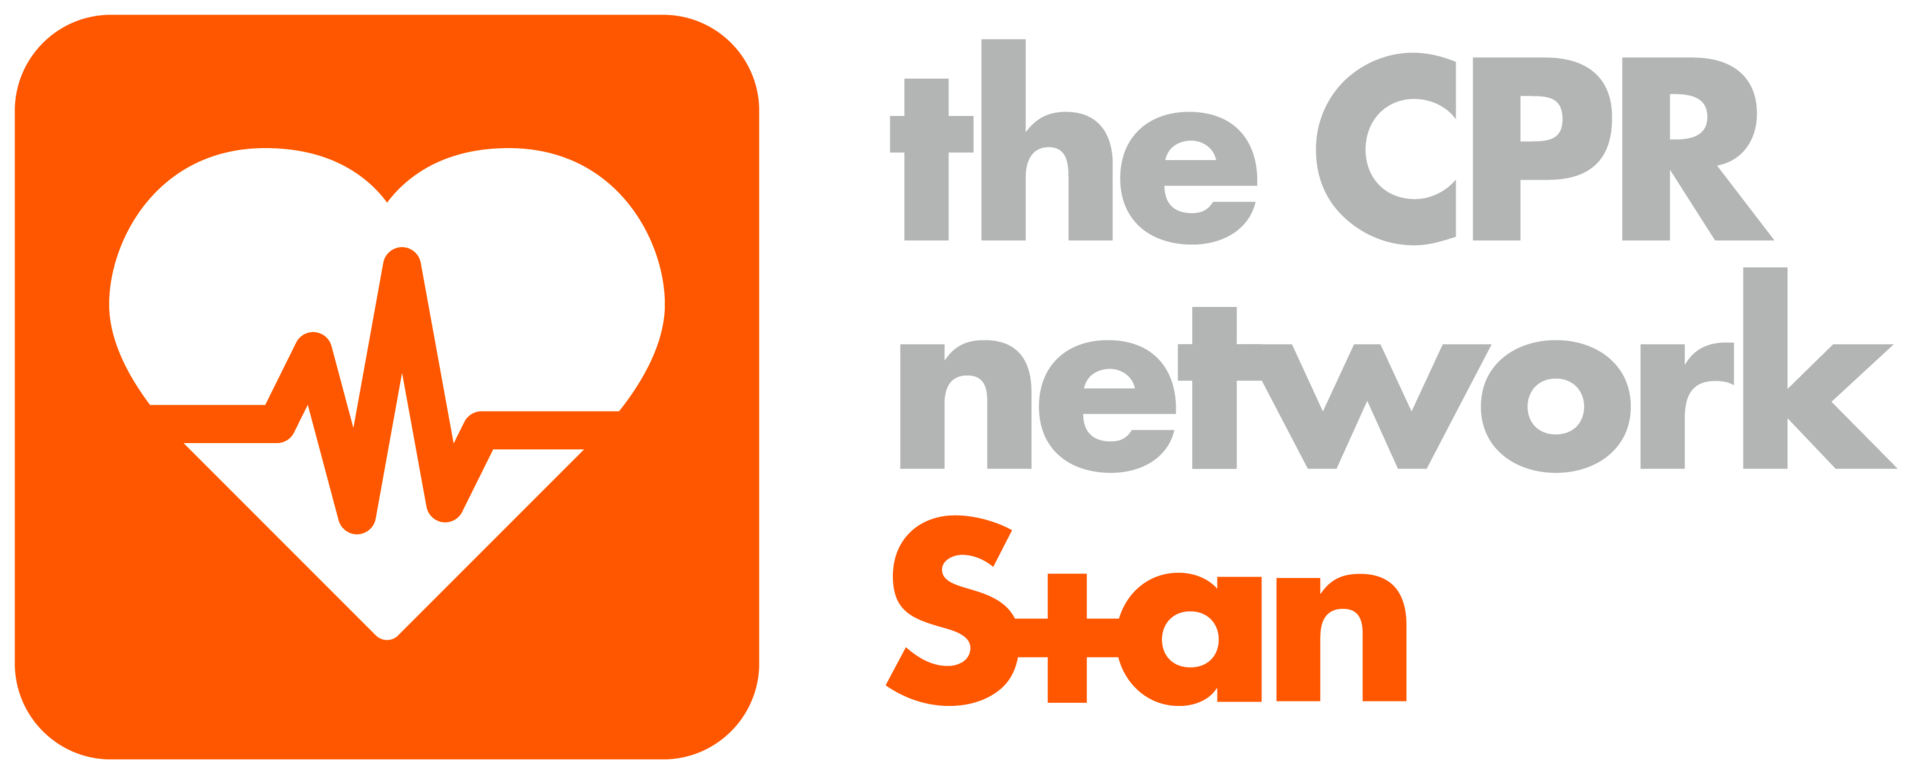 Frequently Asked Questions Stan The Cpr Network